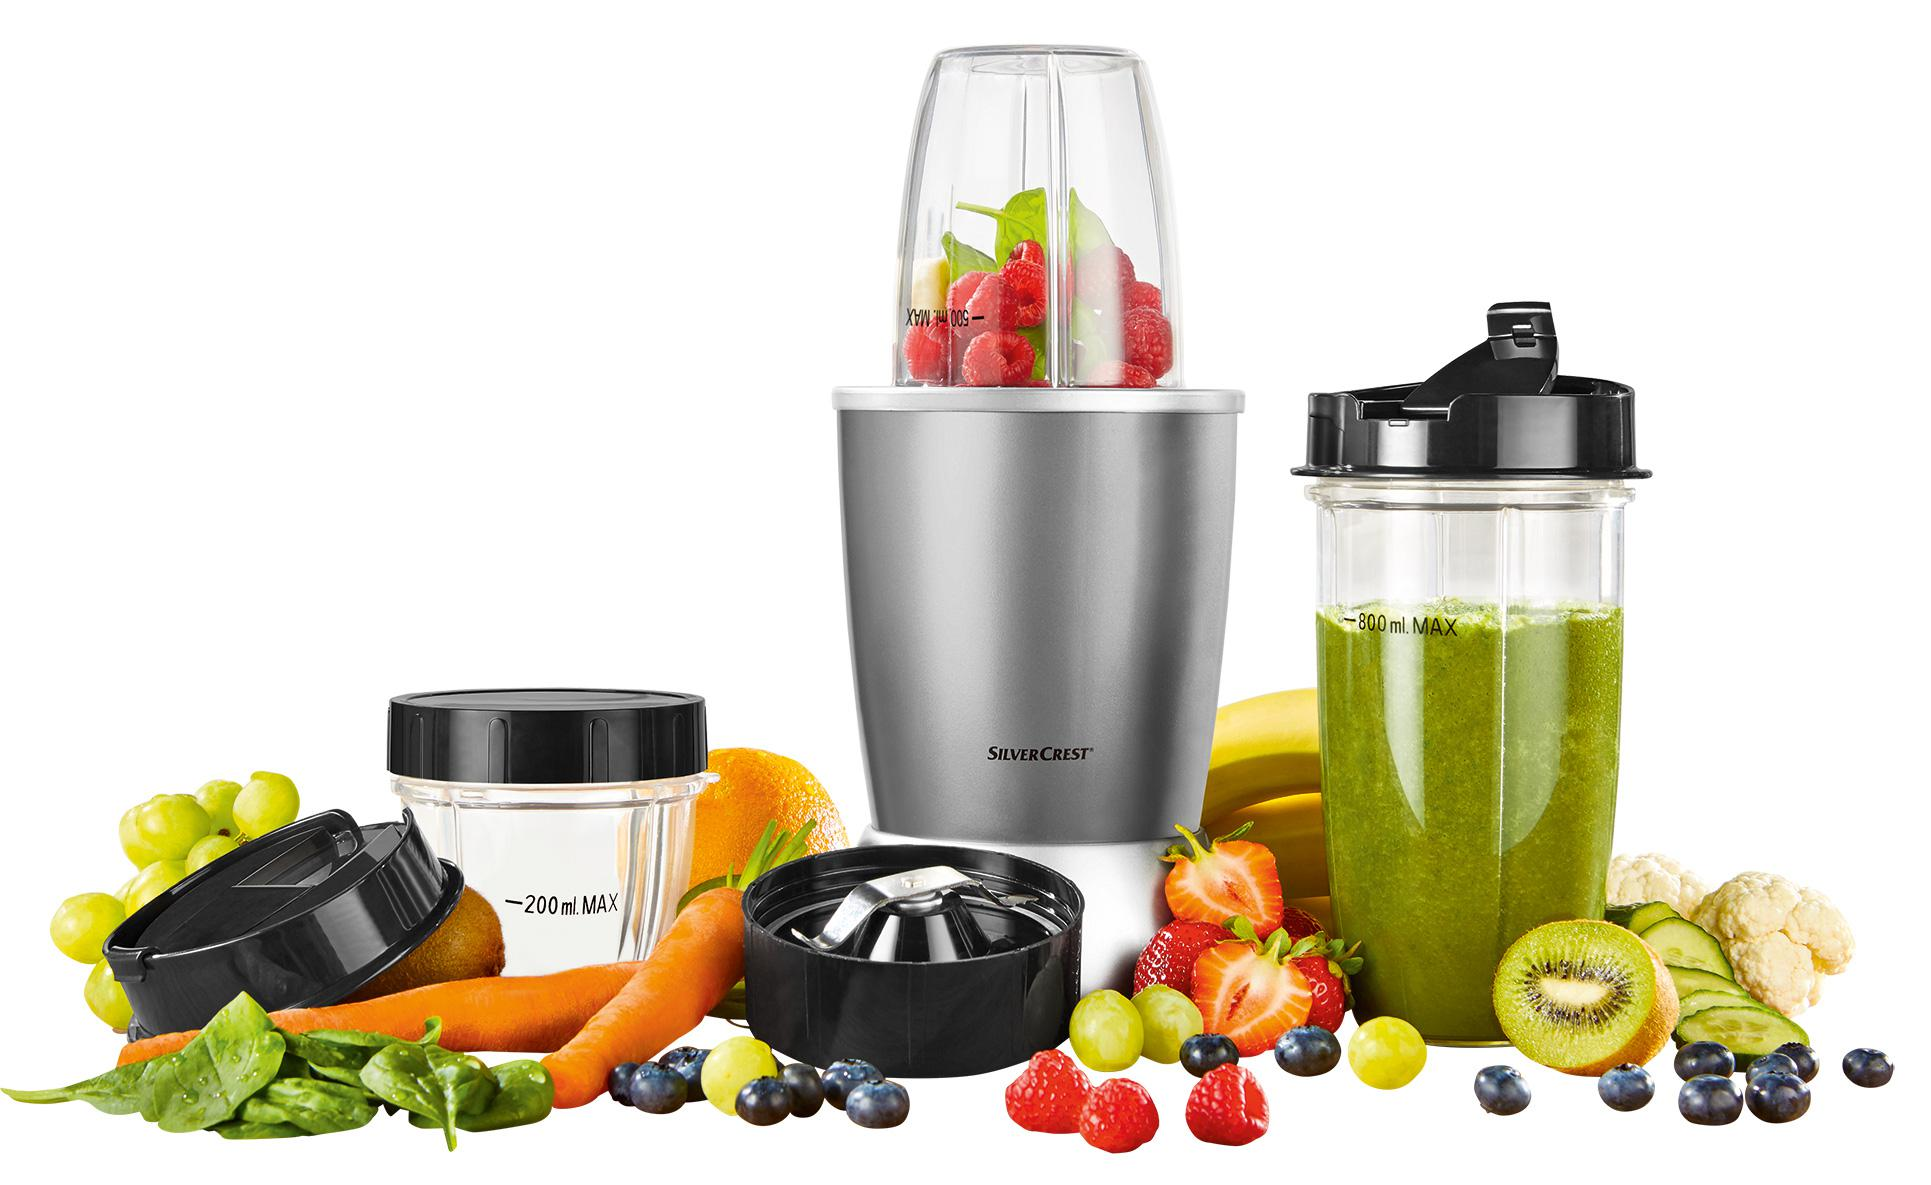 lidl is selling a cheap smoothie maker